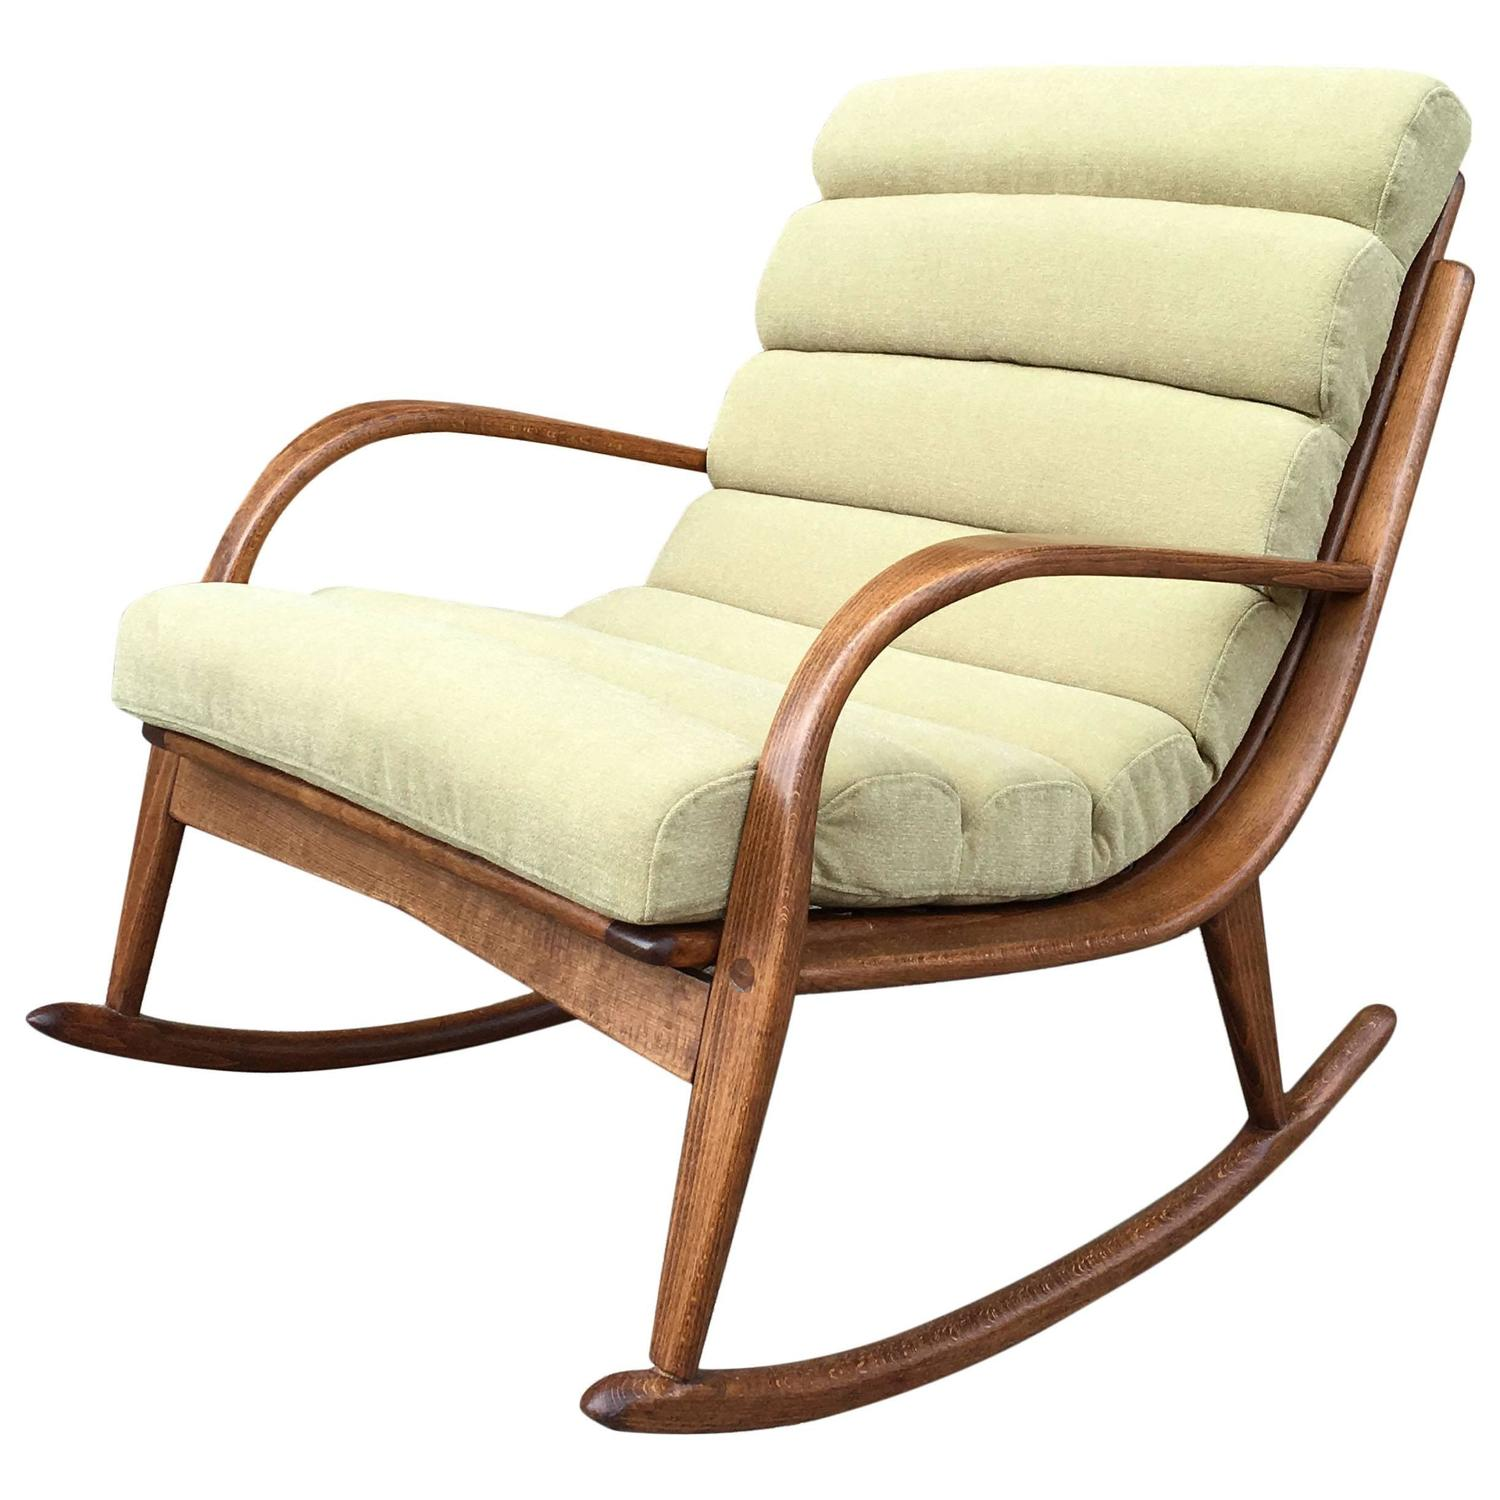 Upholstered Rocking Chair Extremely Rare Danish Modern Bentwood Upholstered Rocking